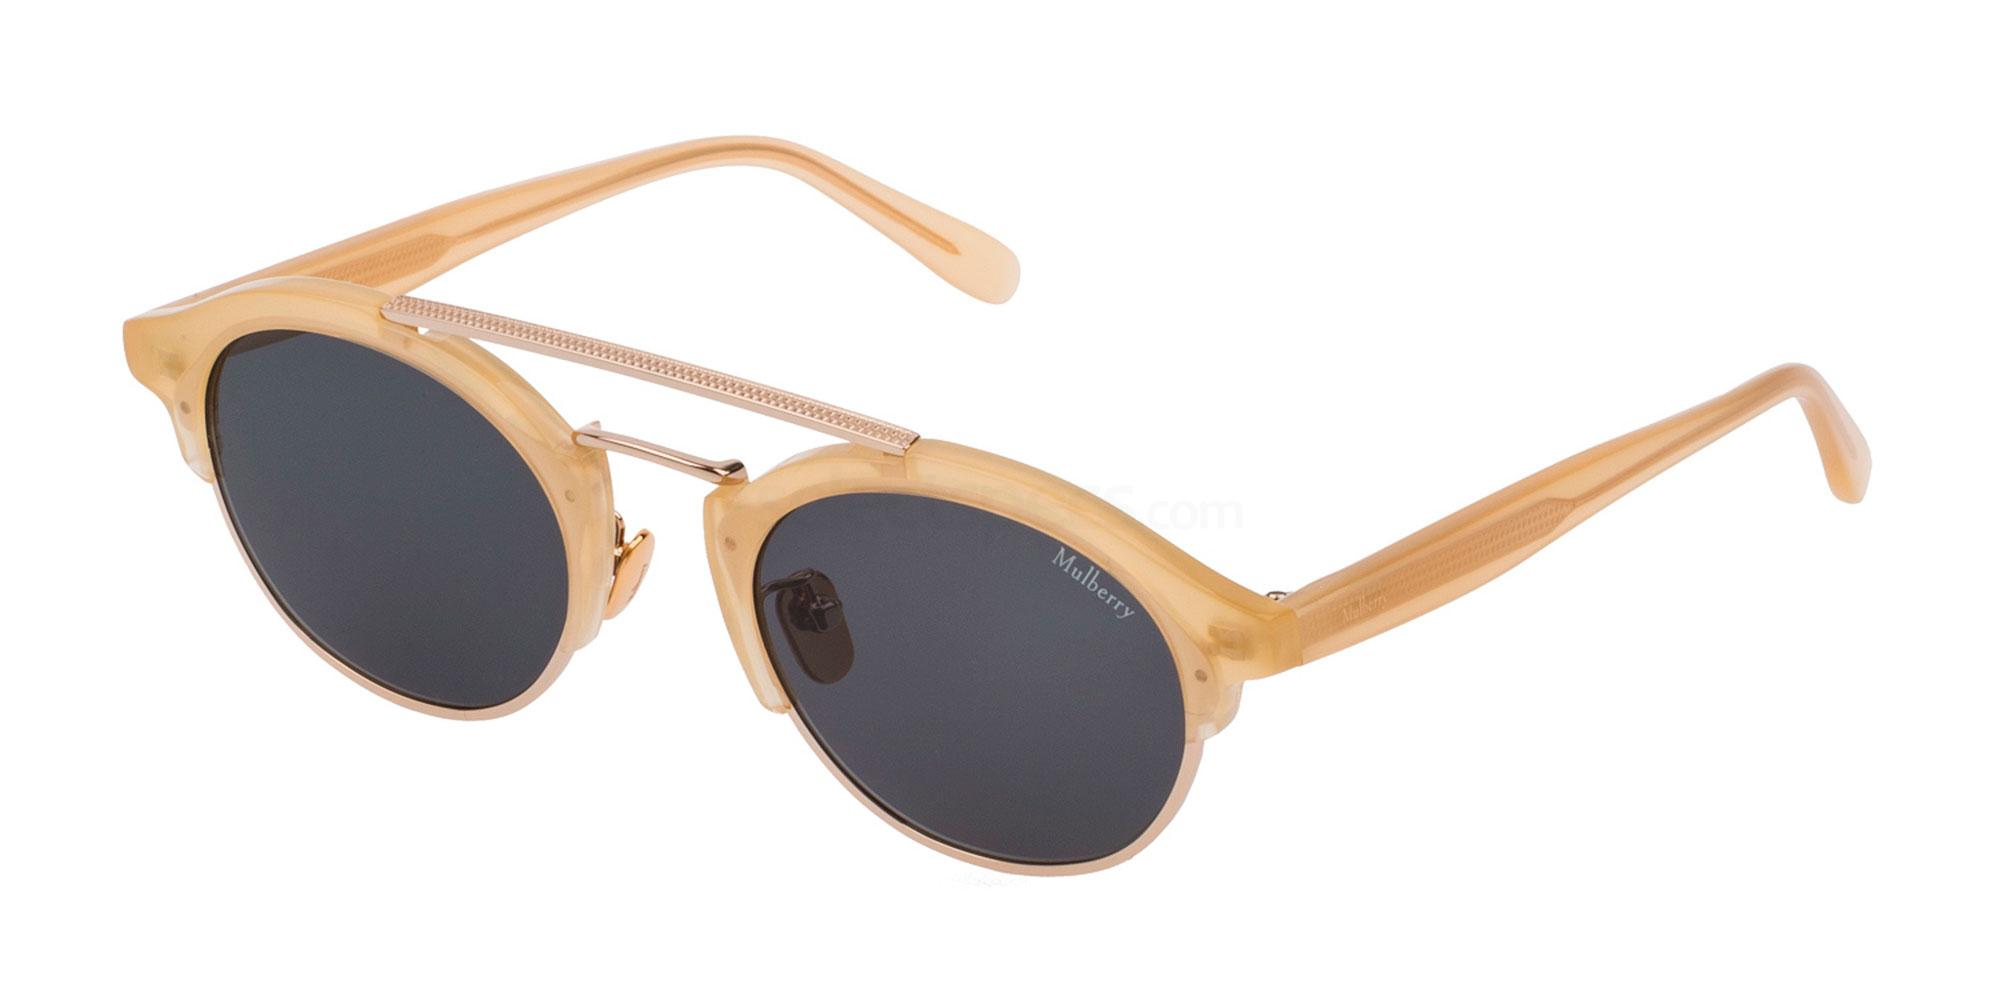 Mulberry SML006 skinny sunglasses